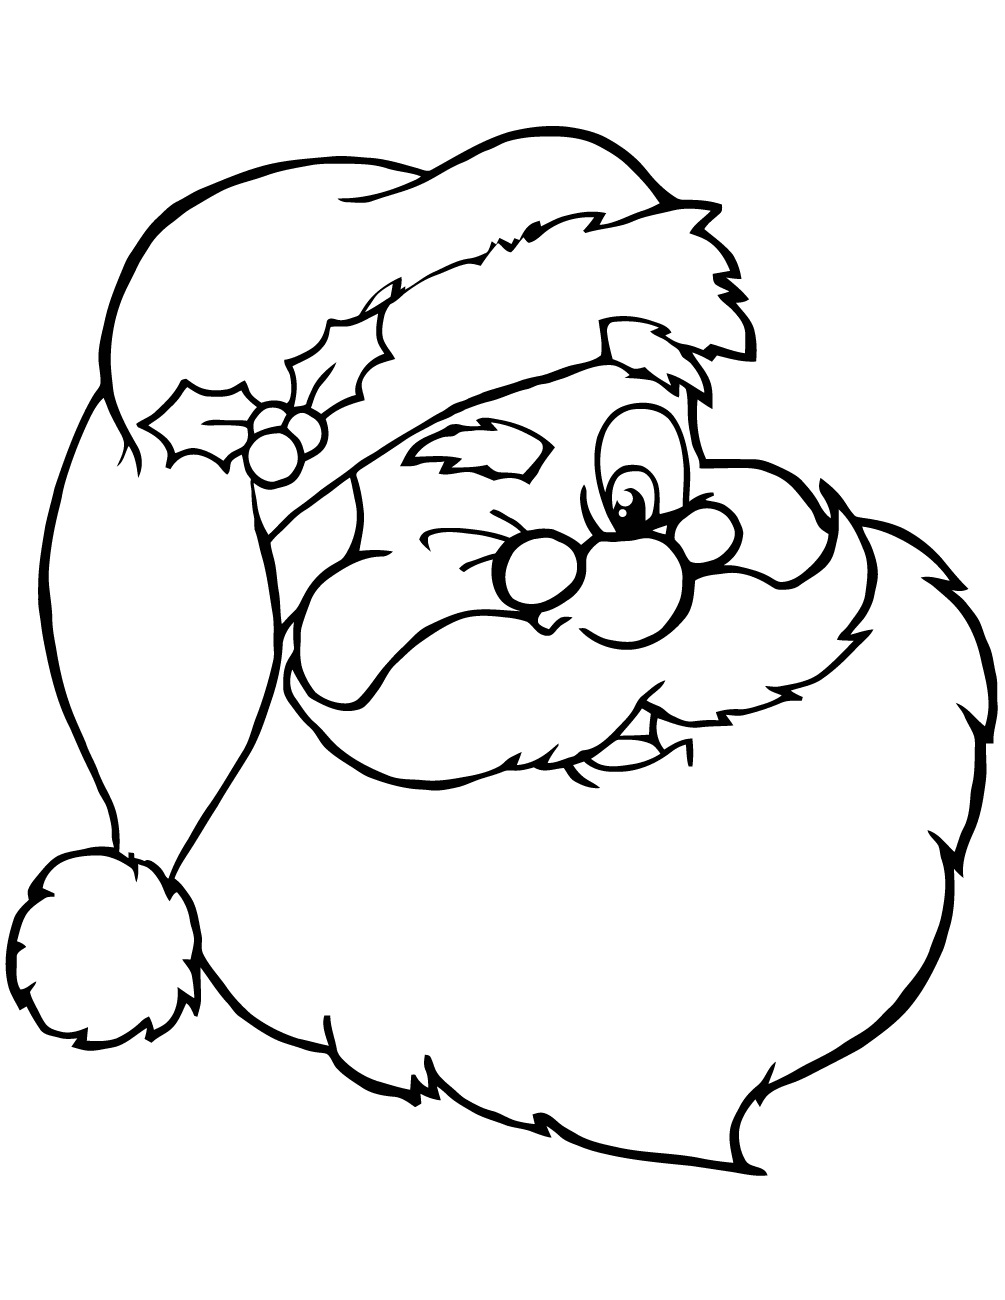 Christmas ball ornaments coloring page free coloring for Santa claus coloring pages online